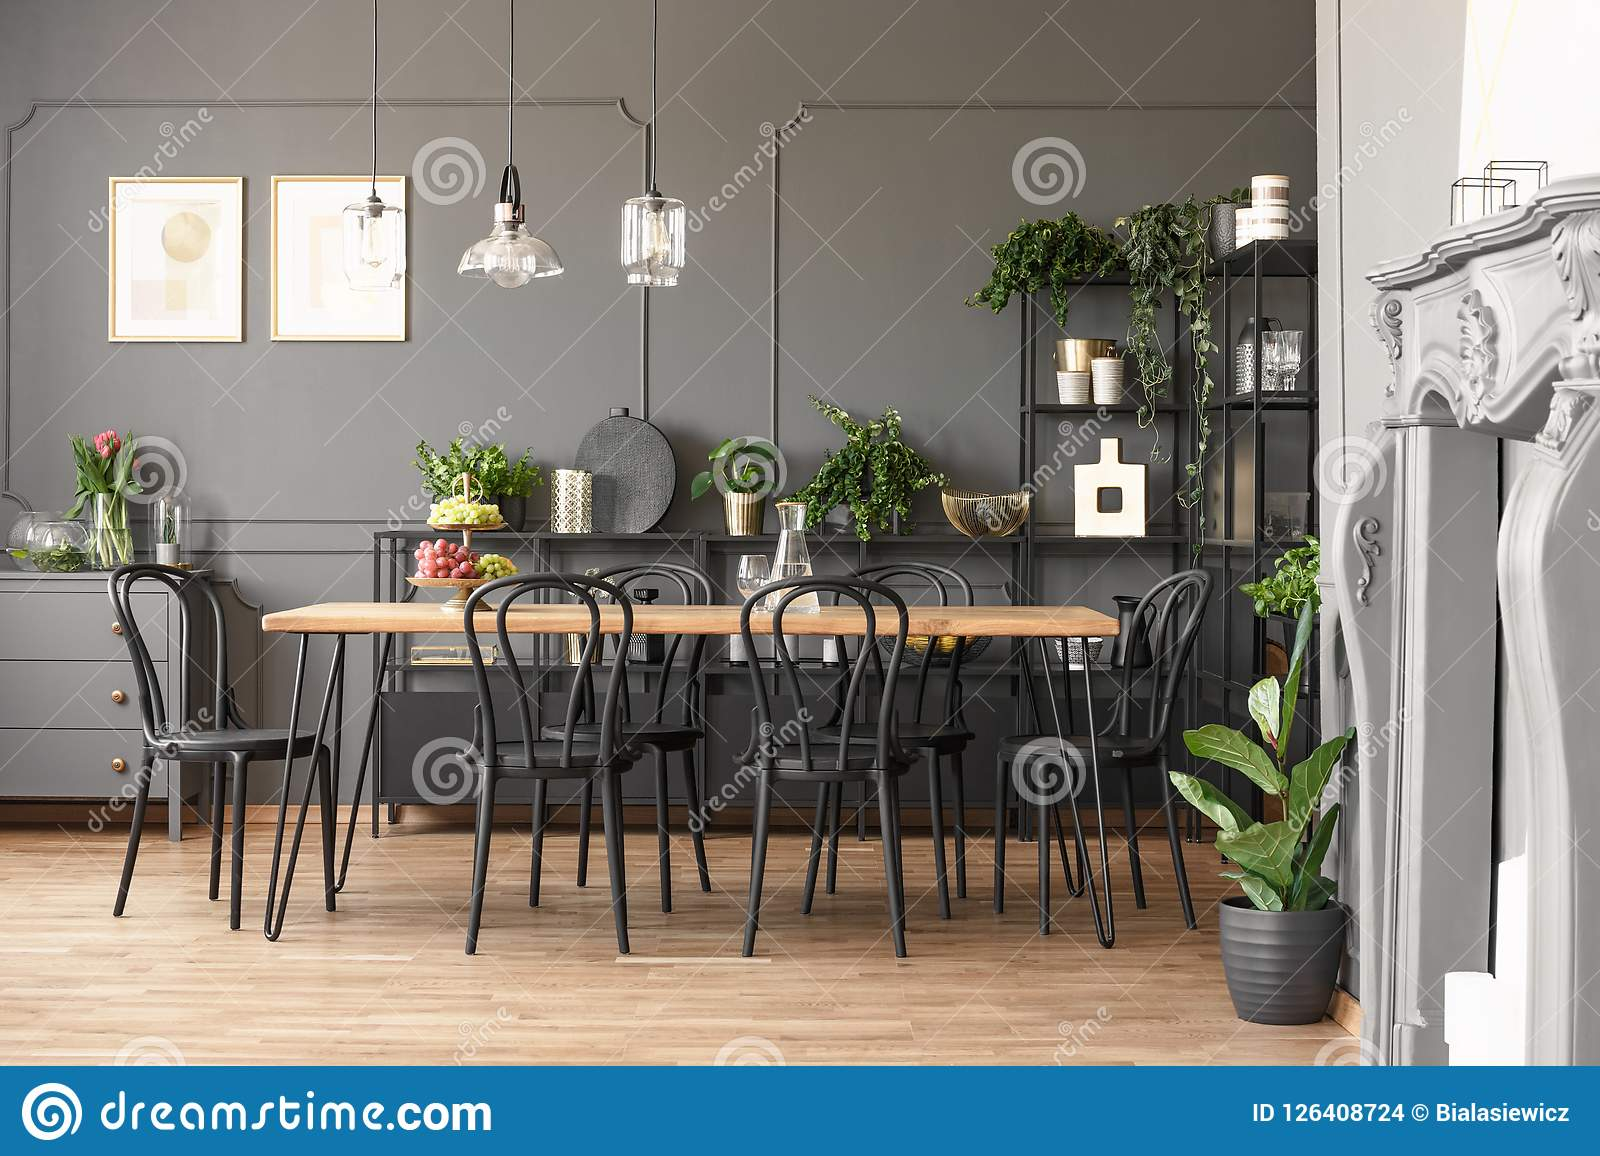 Lamps above wooden table and black chairs in grey dining room in